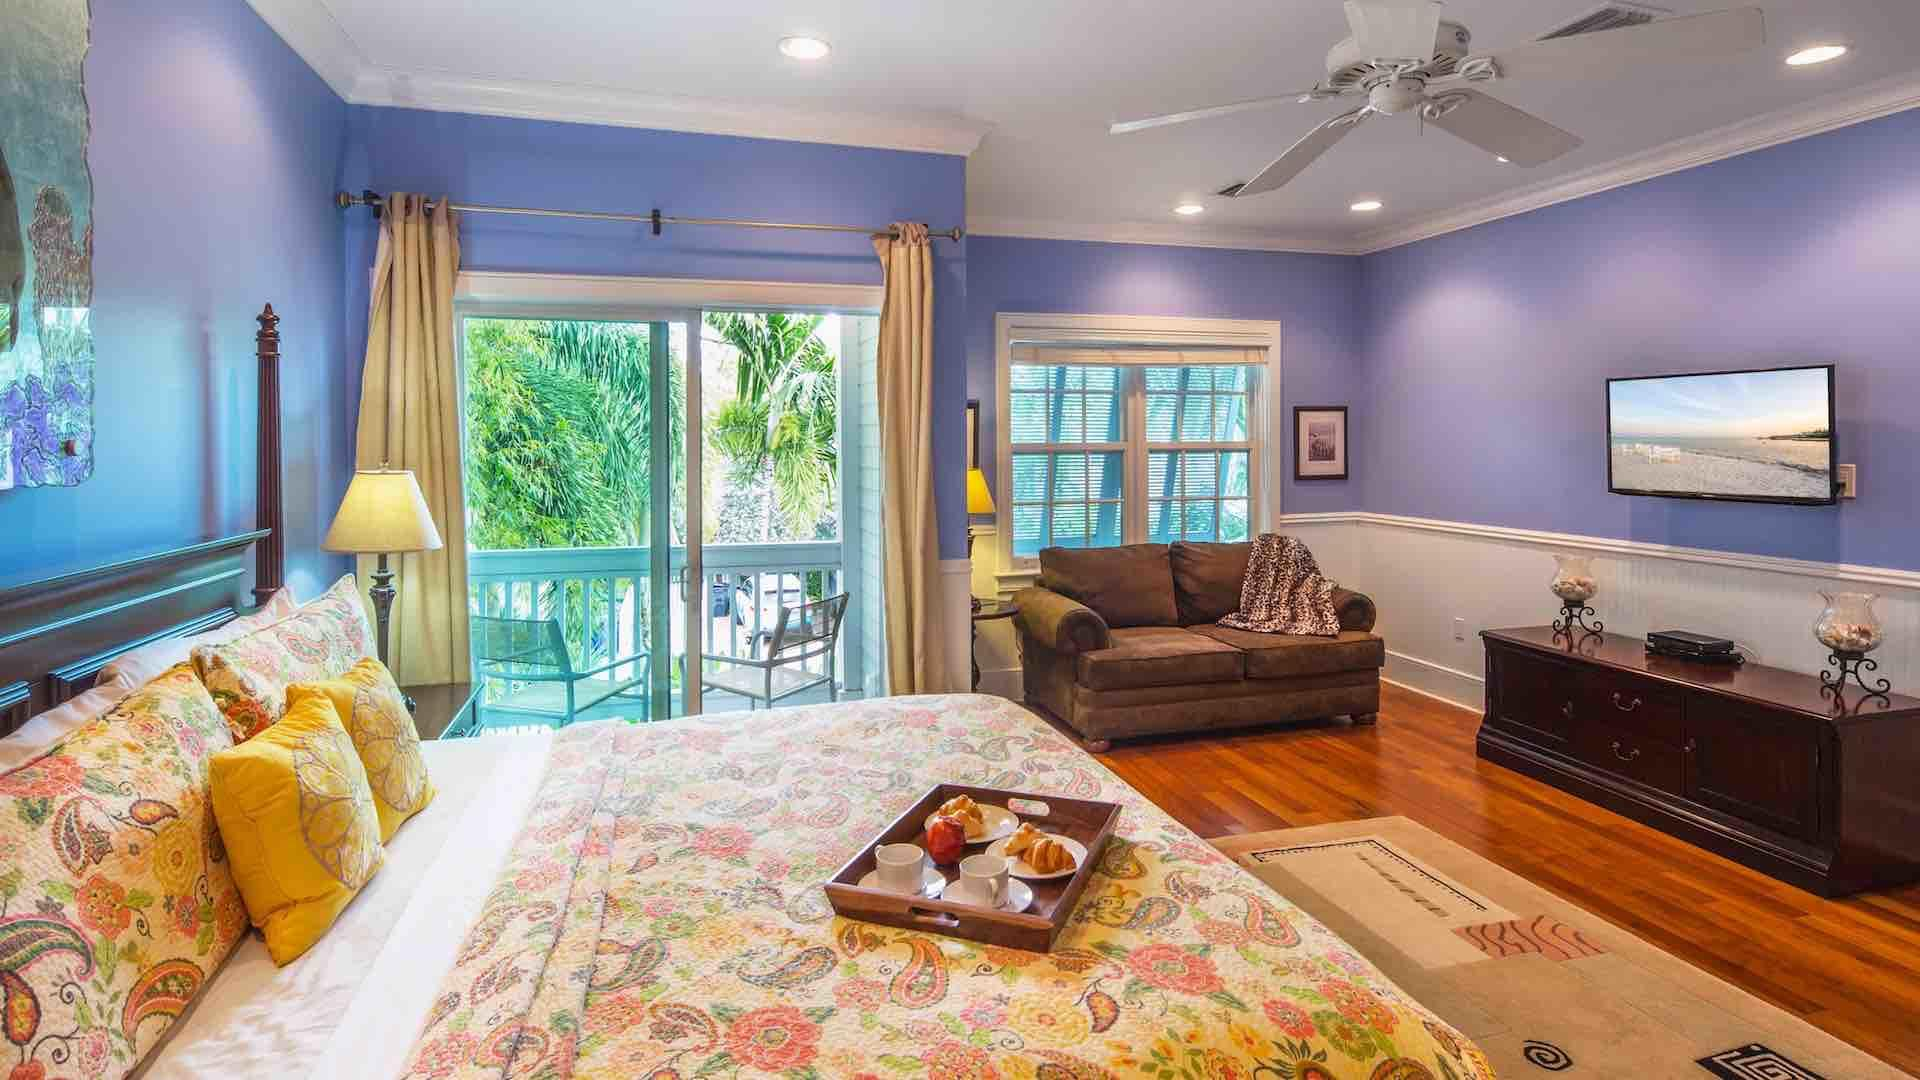 The first master suite has a large King bed and a flat screen TV...